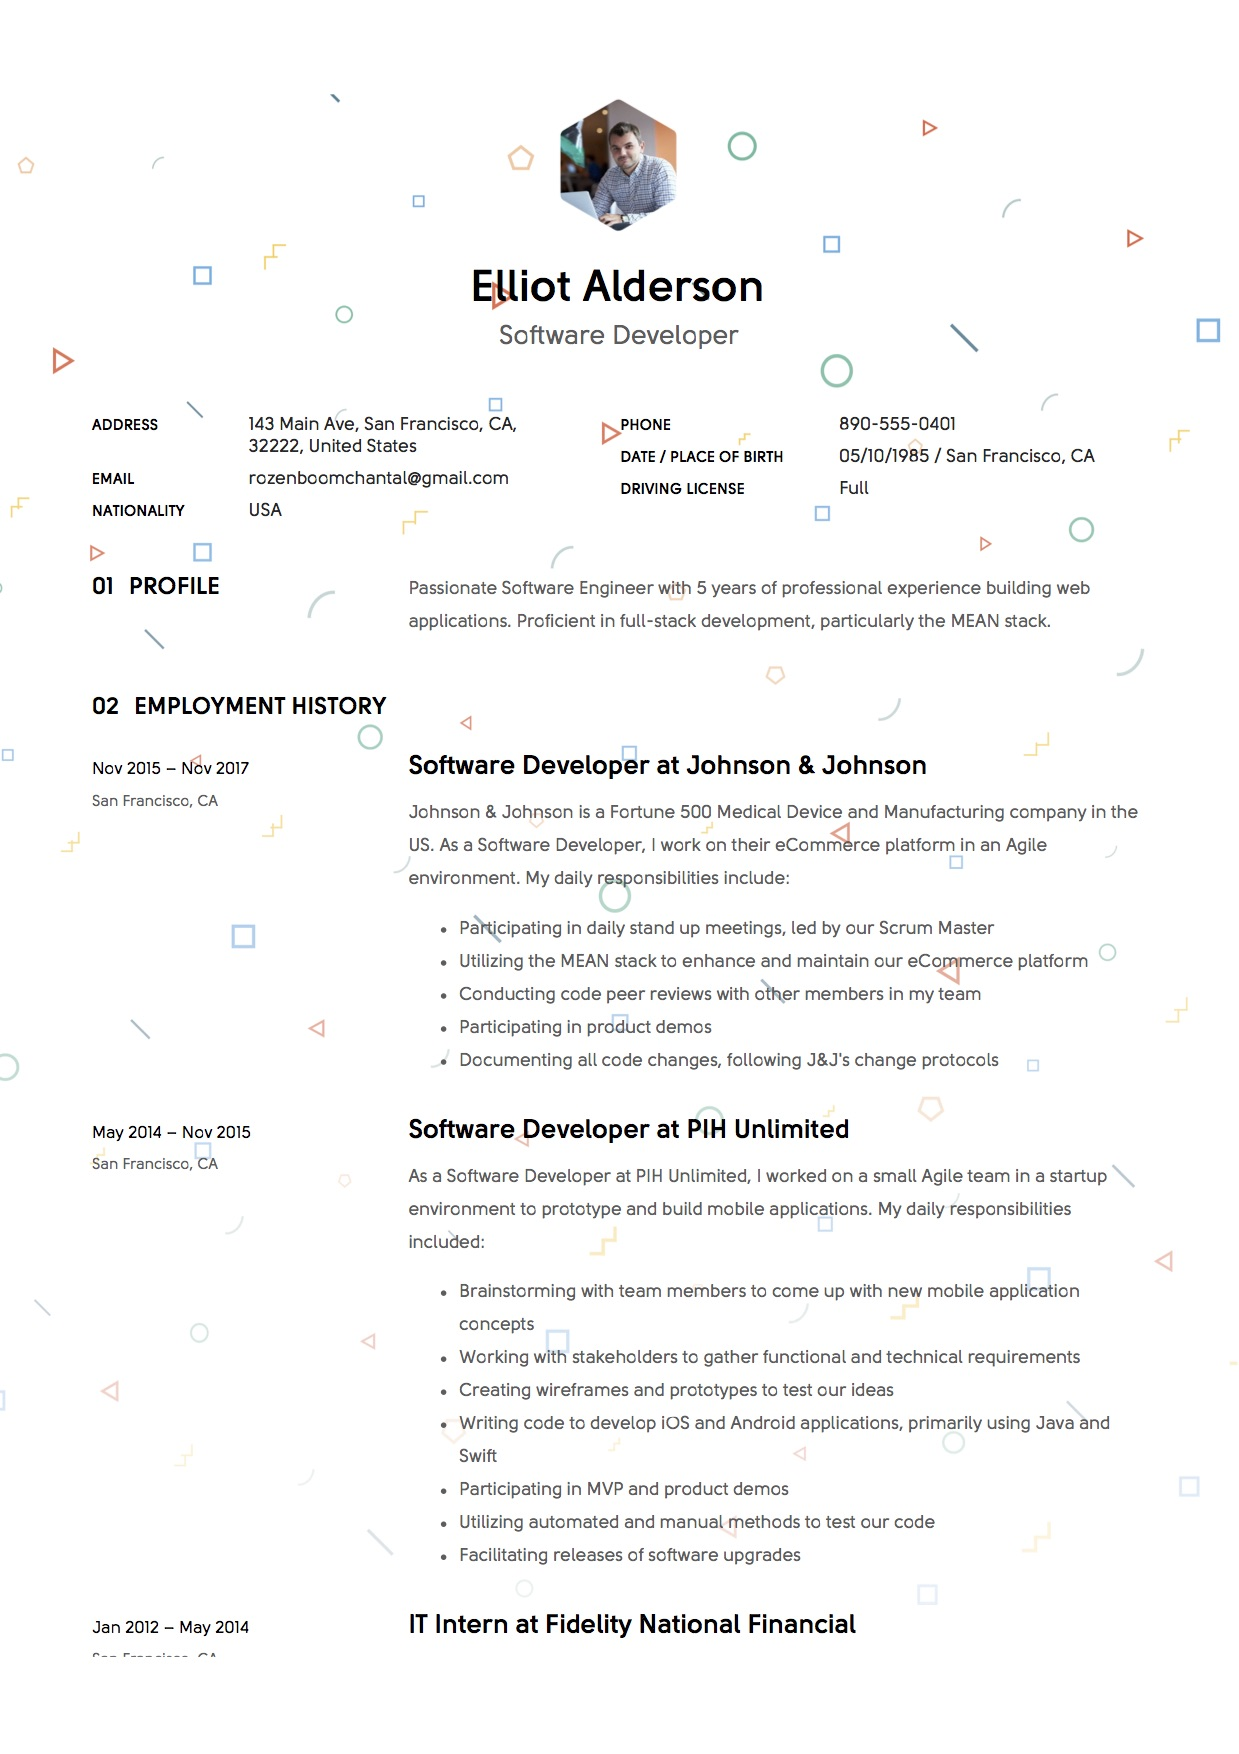 Resume - Software Developer (7)